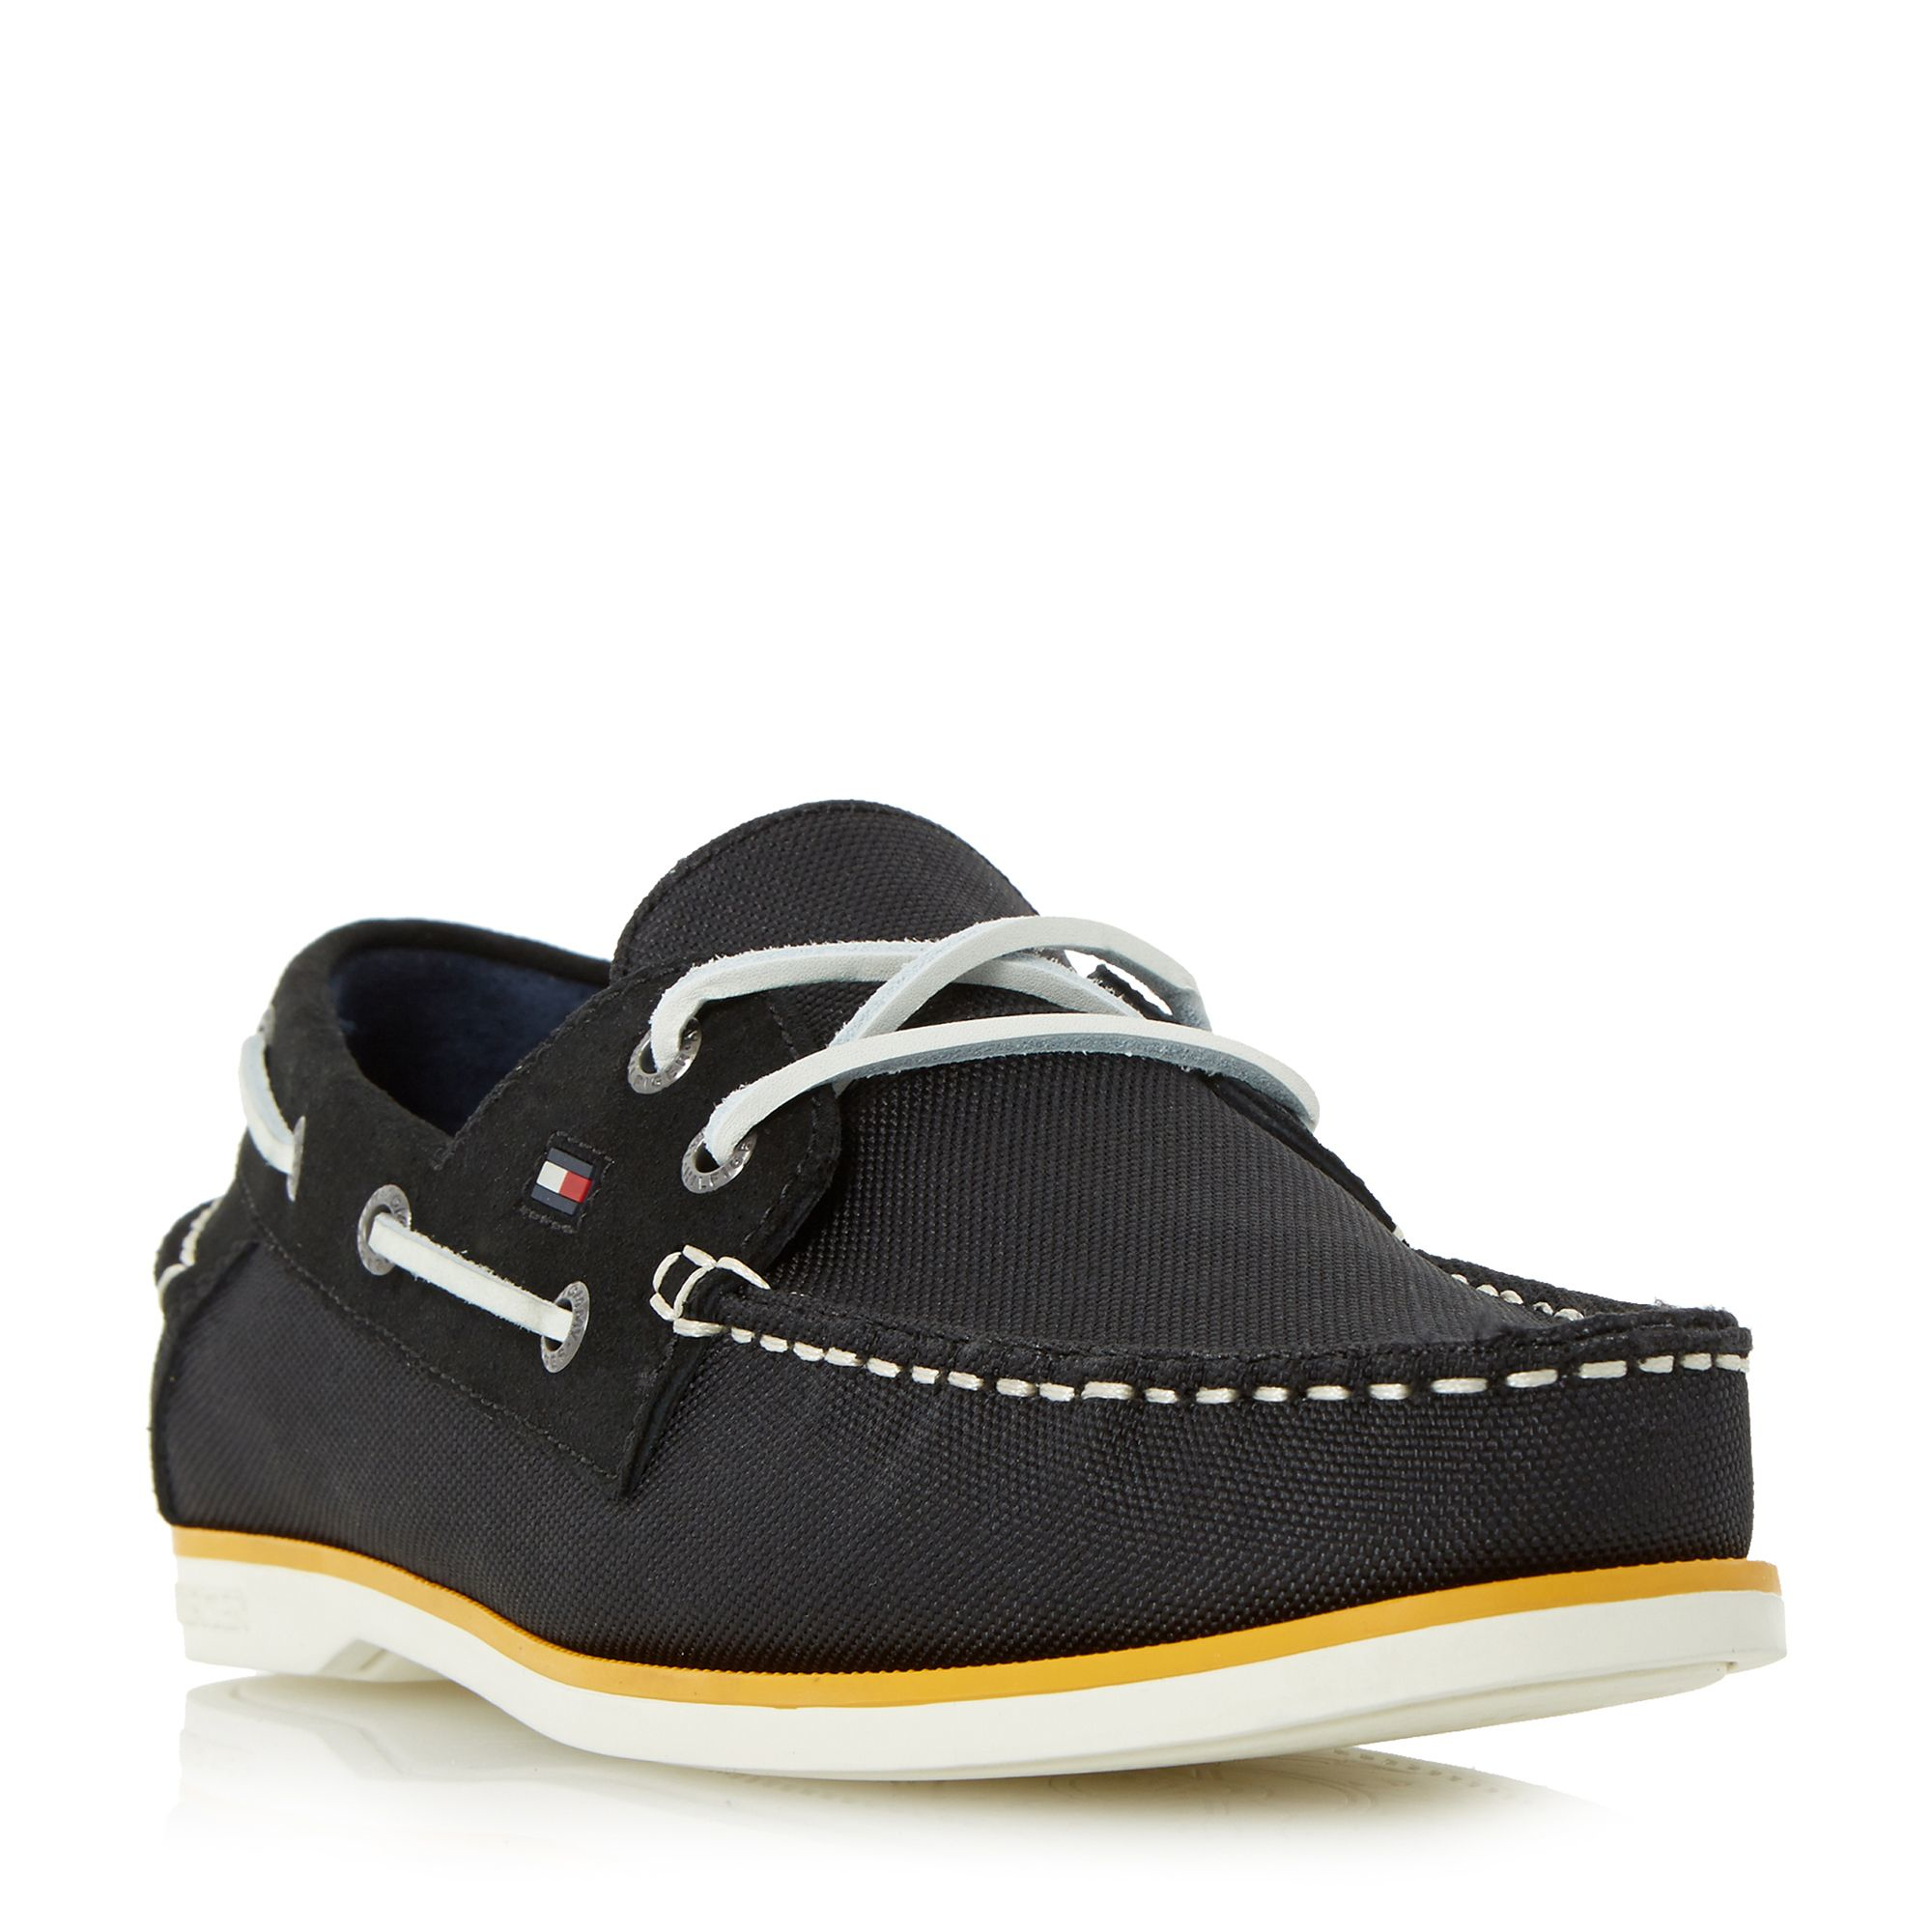 Tommy Hilfiger Deck 4d Mixed White Sole Boat Shoes In